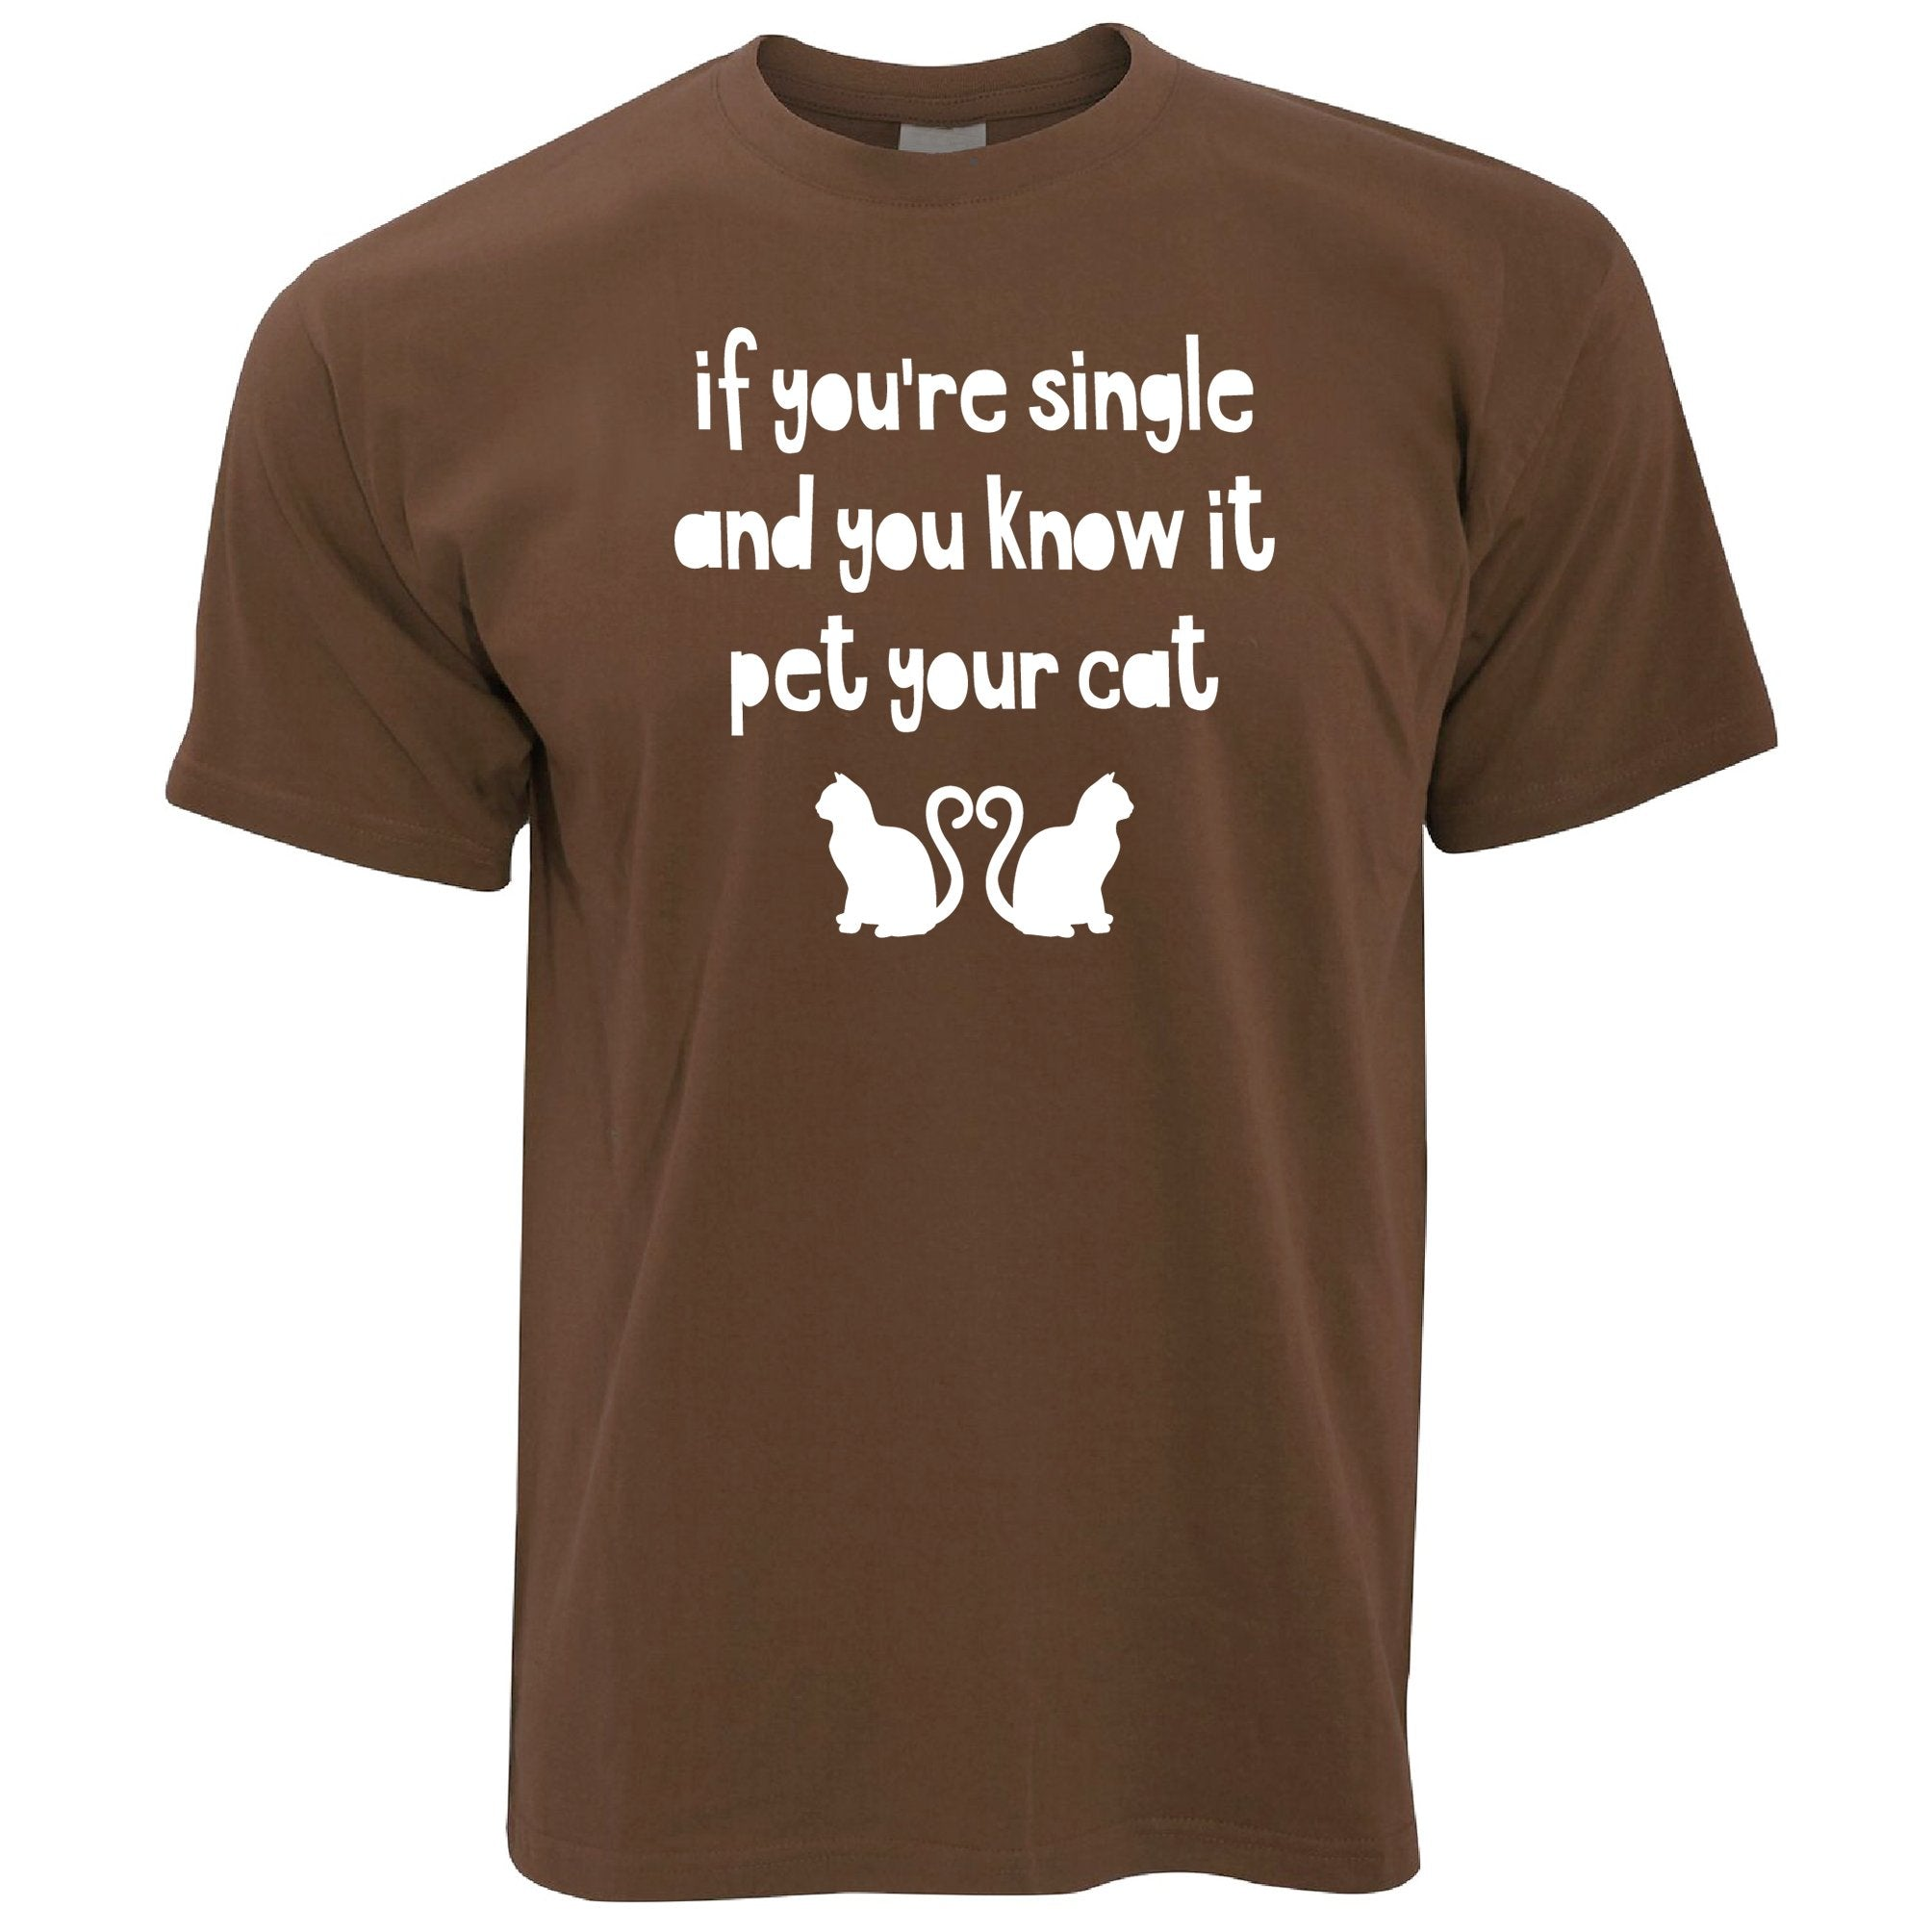 Valentines T Shirt Single And You Know It Joke